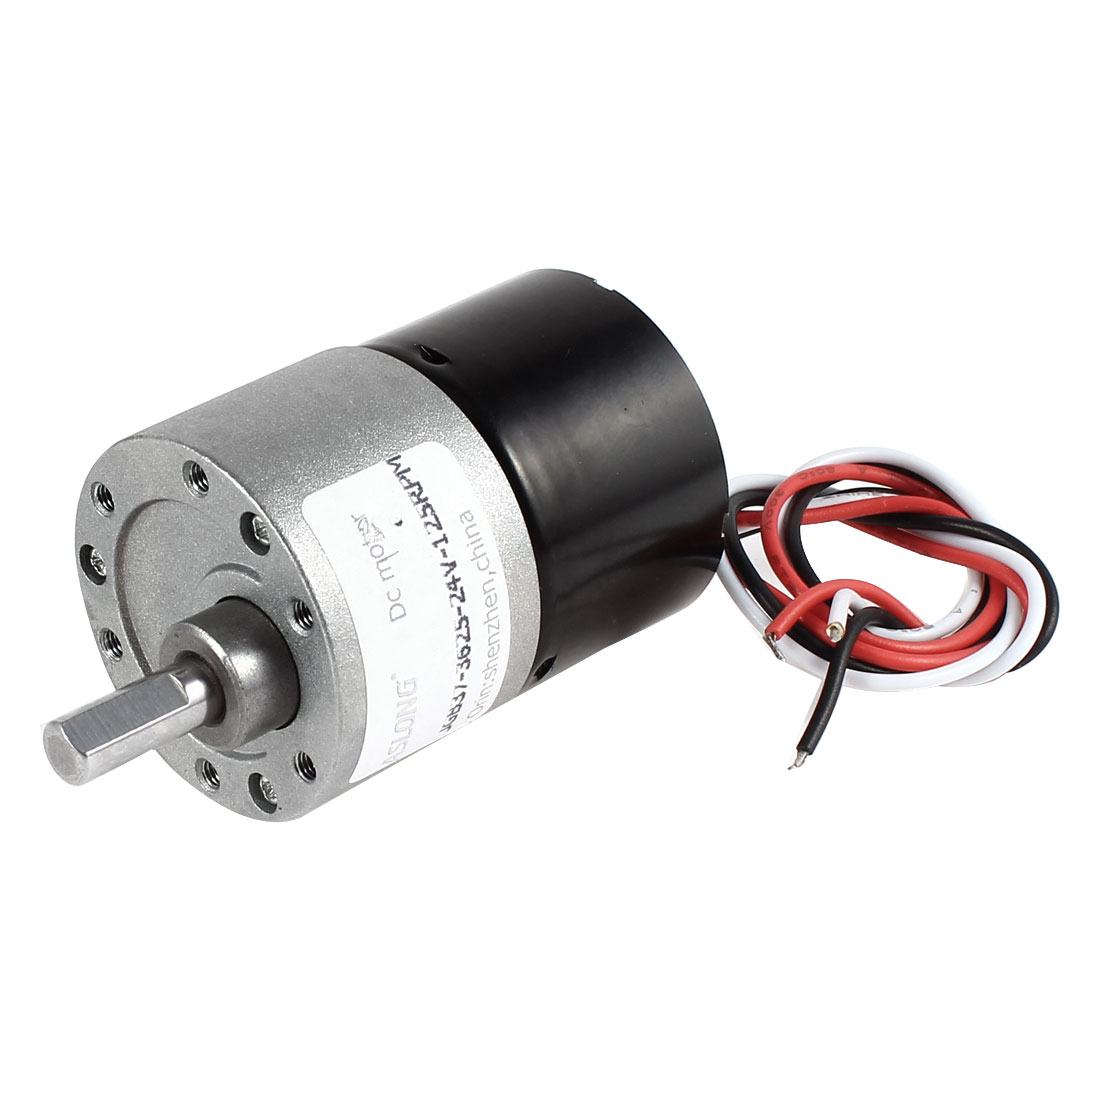 DC 24V 125RPM 5.9mm Shaft Electric Geared Box Speed Reducing Brushless Motor